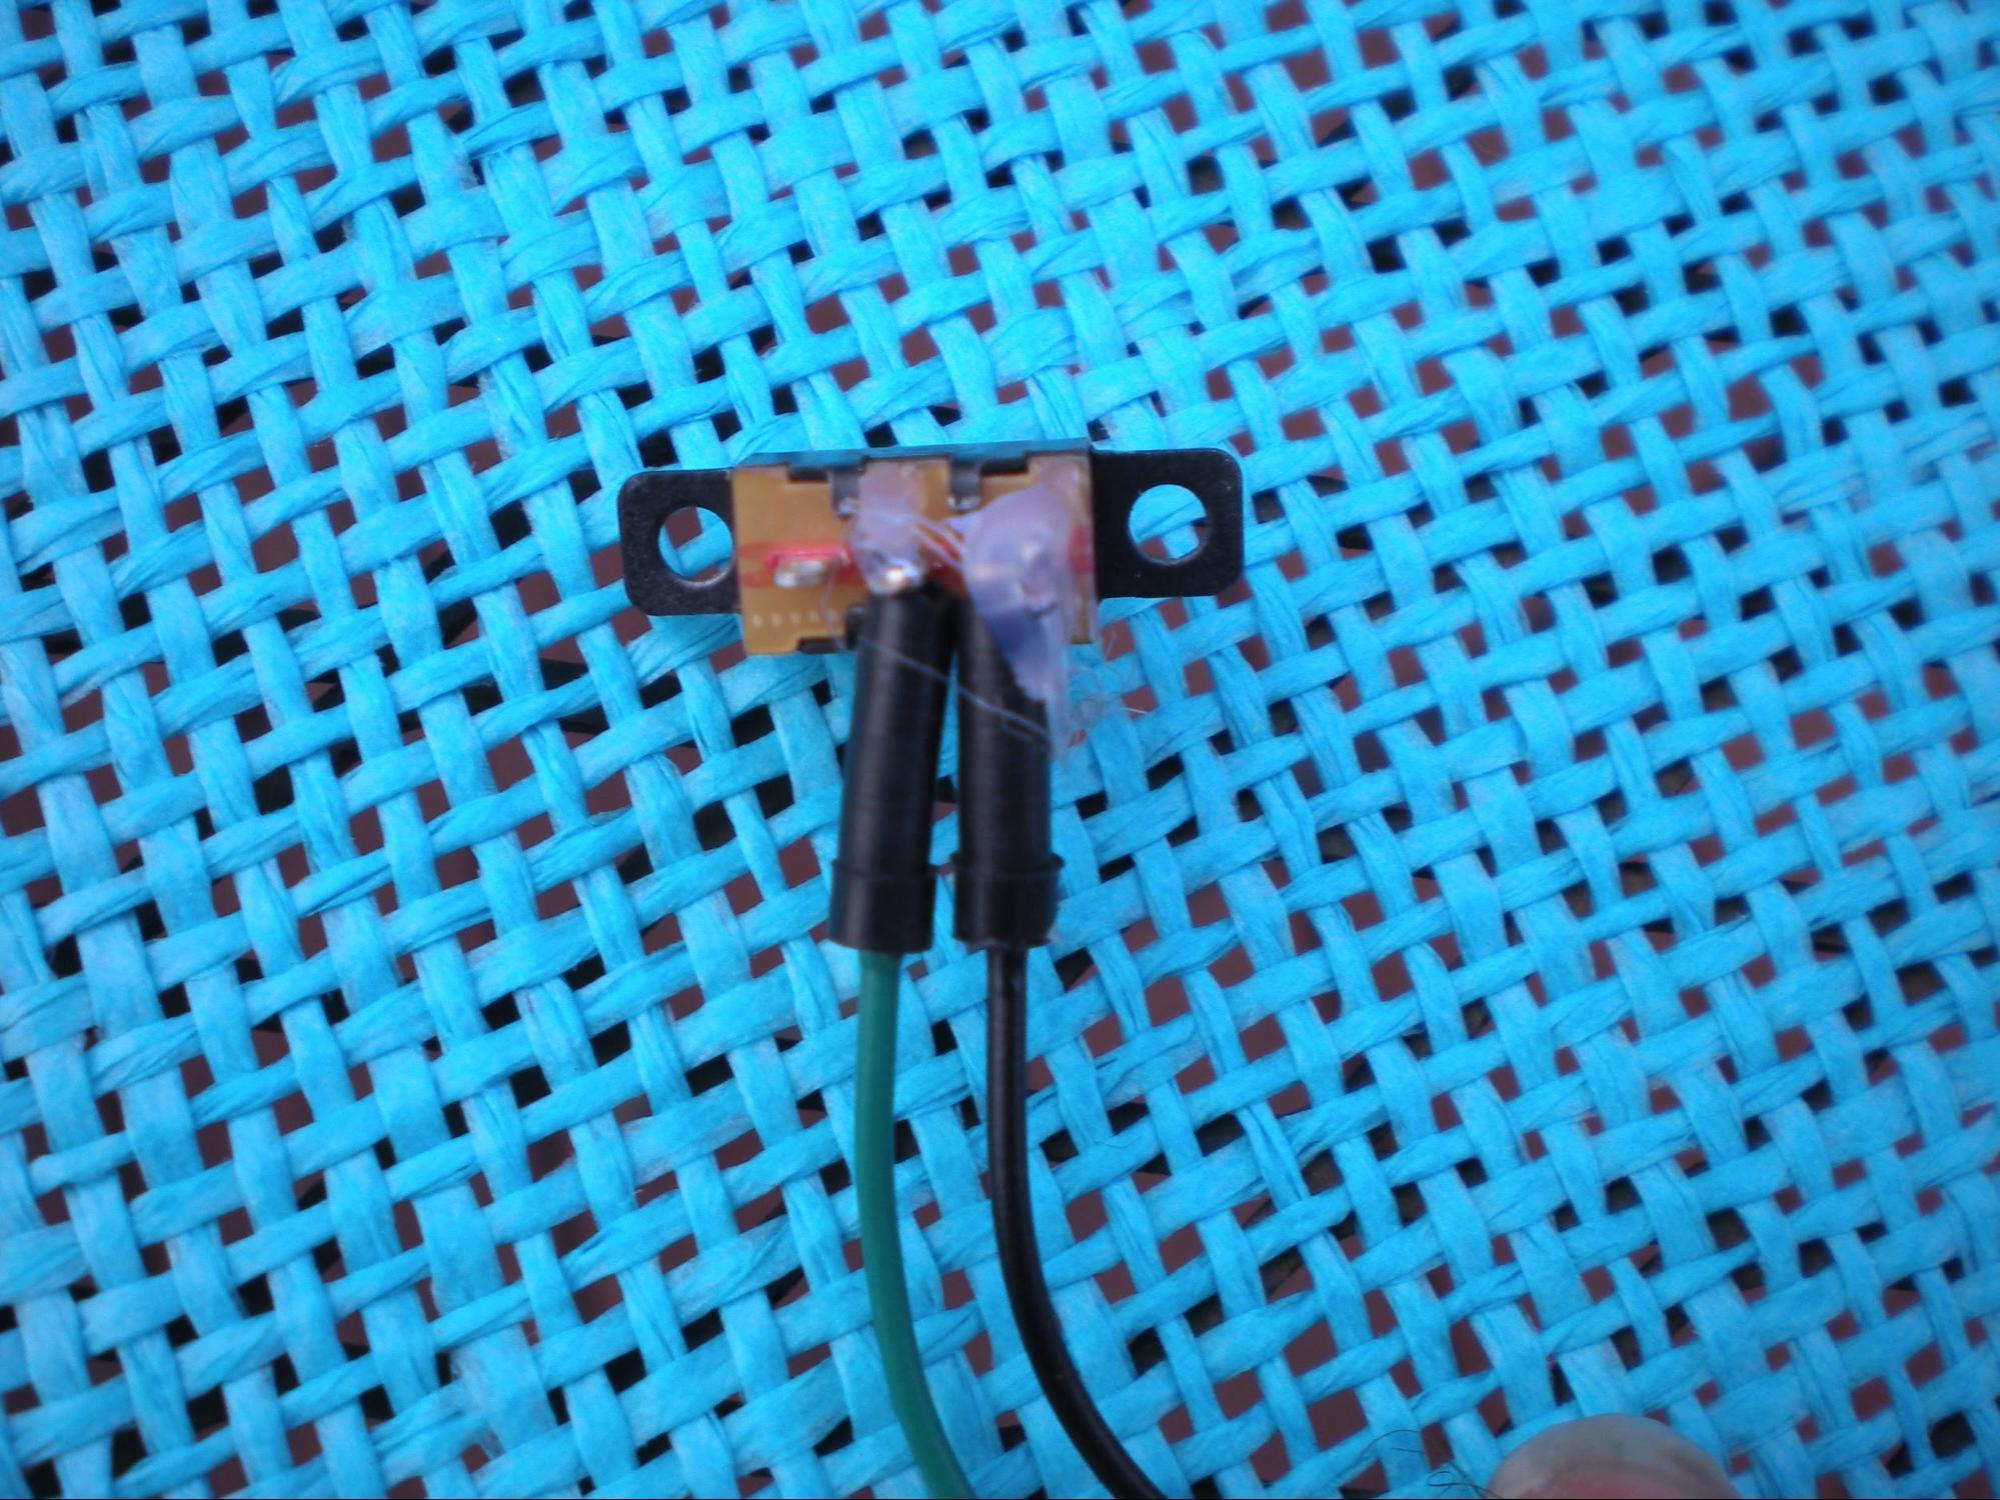 hight resolution of usb charger mini slide switch setup with soldered jumper wires and hot glue